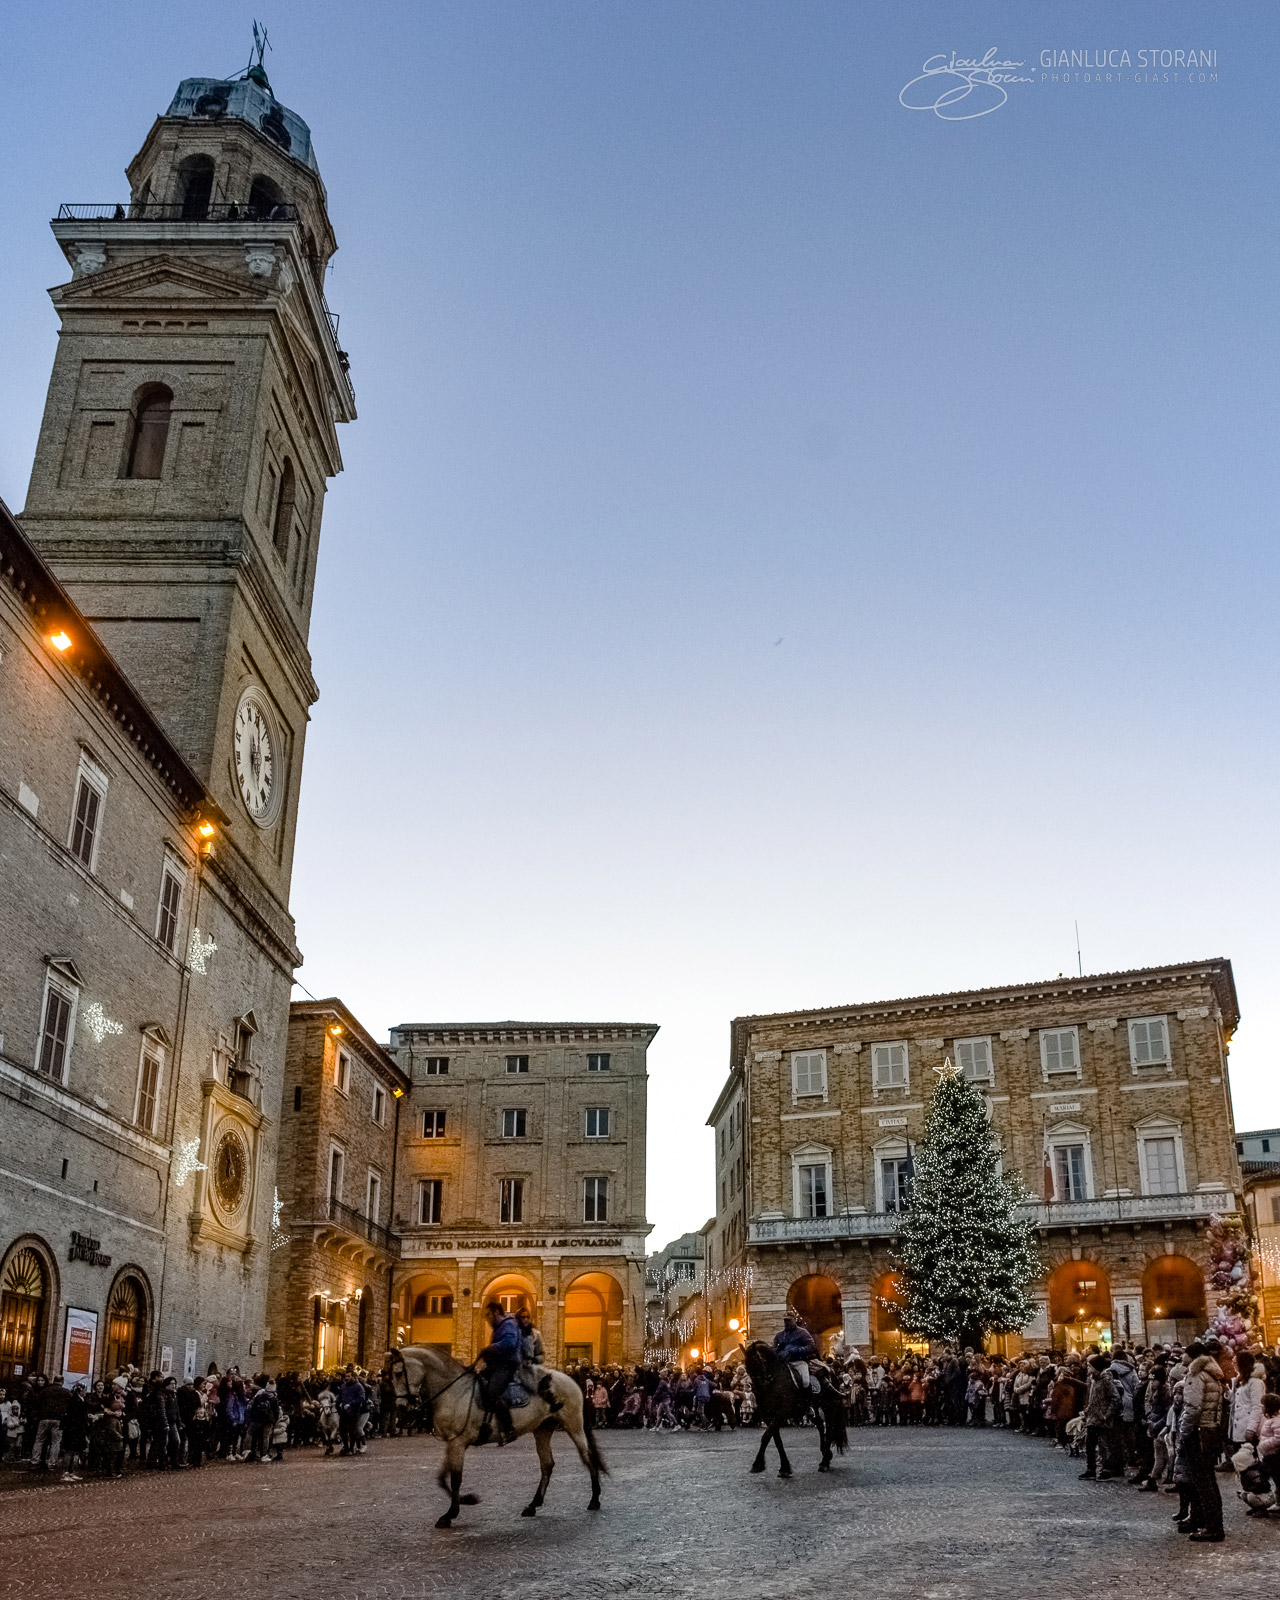 Festa della Befana 2018 di Macerata - Gianluca Storani Photo Art (ID: 4-7558)